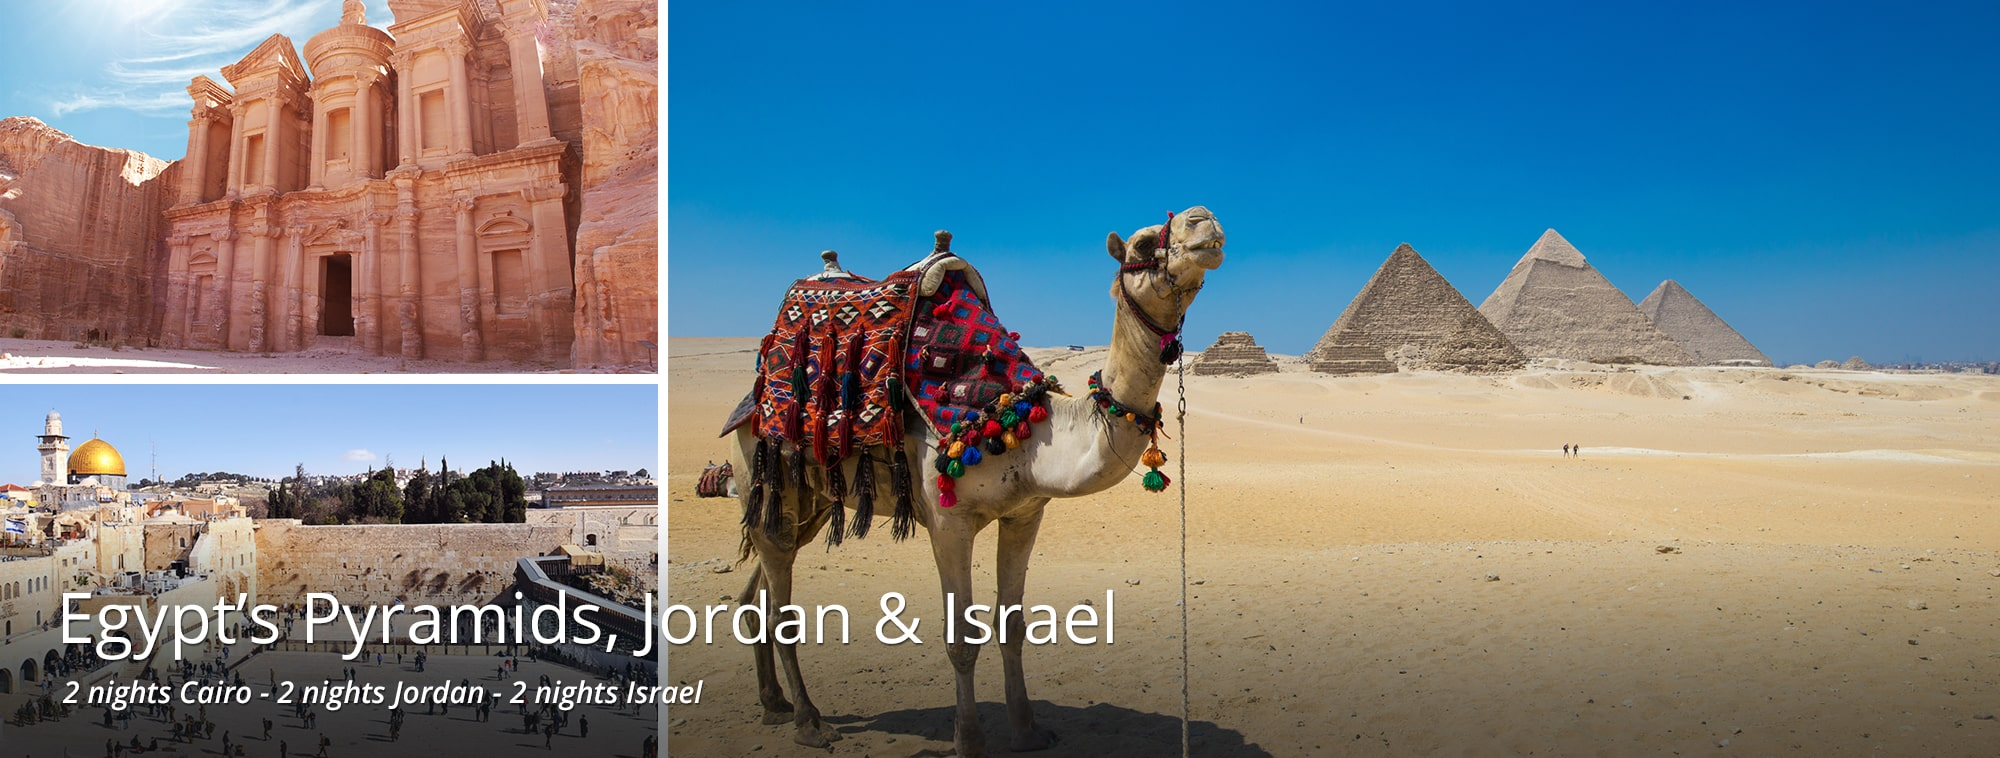 Highlights of Egypt, Jordan & Israel Tour Banner